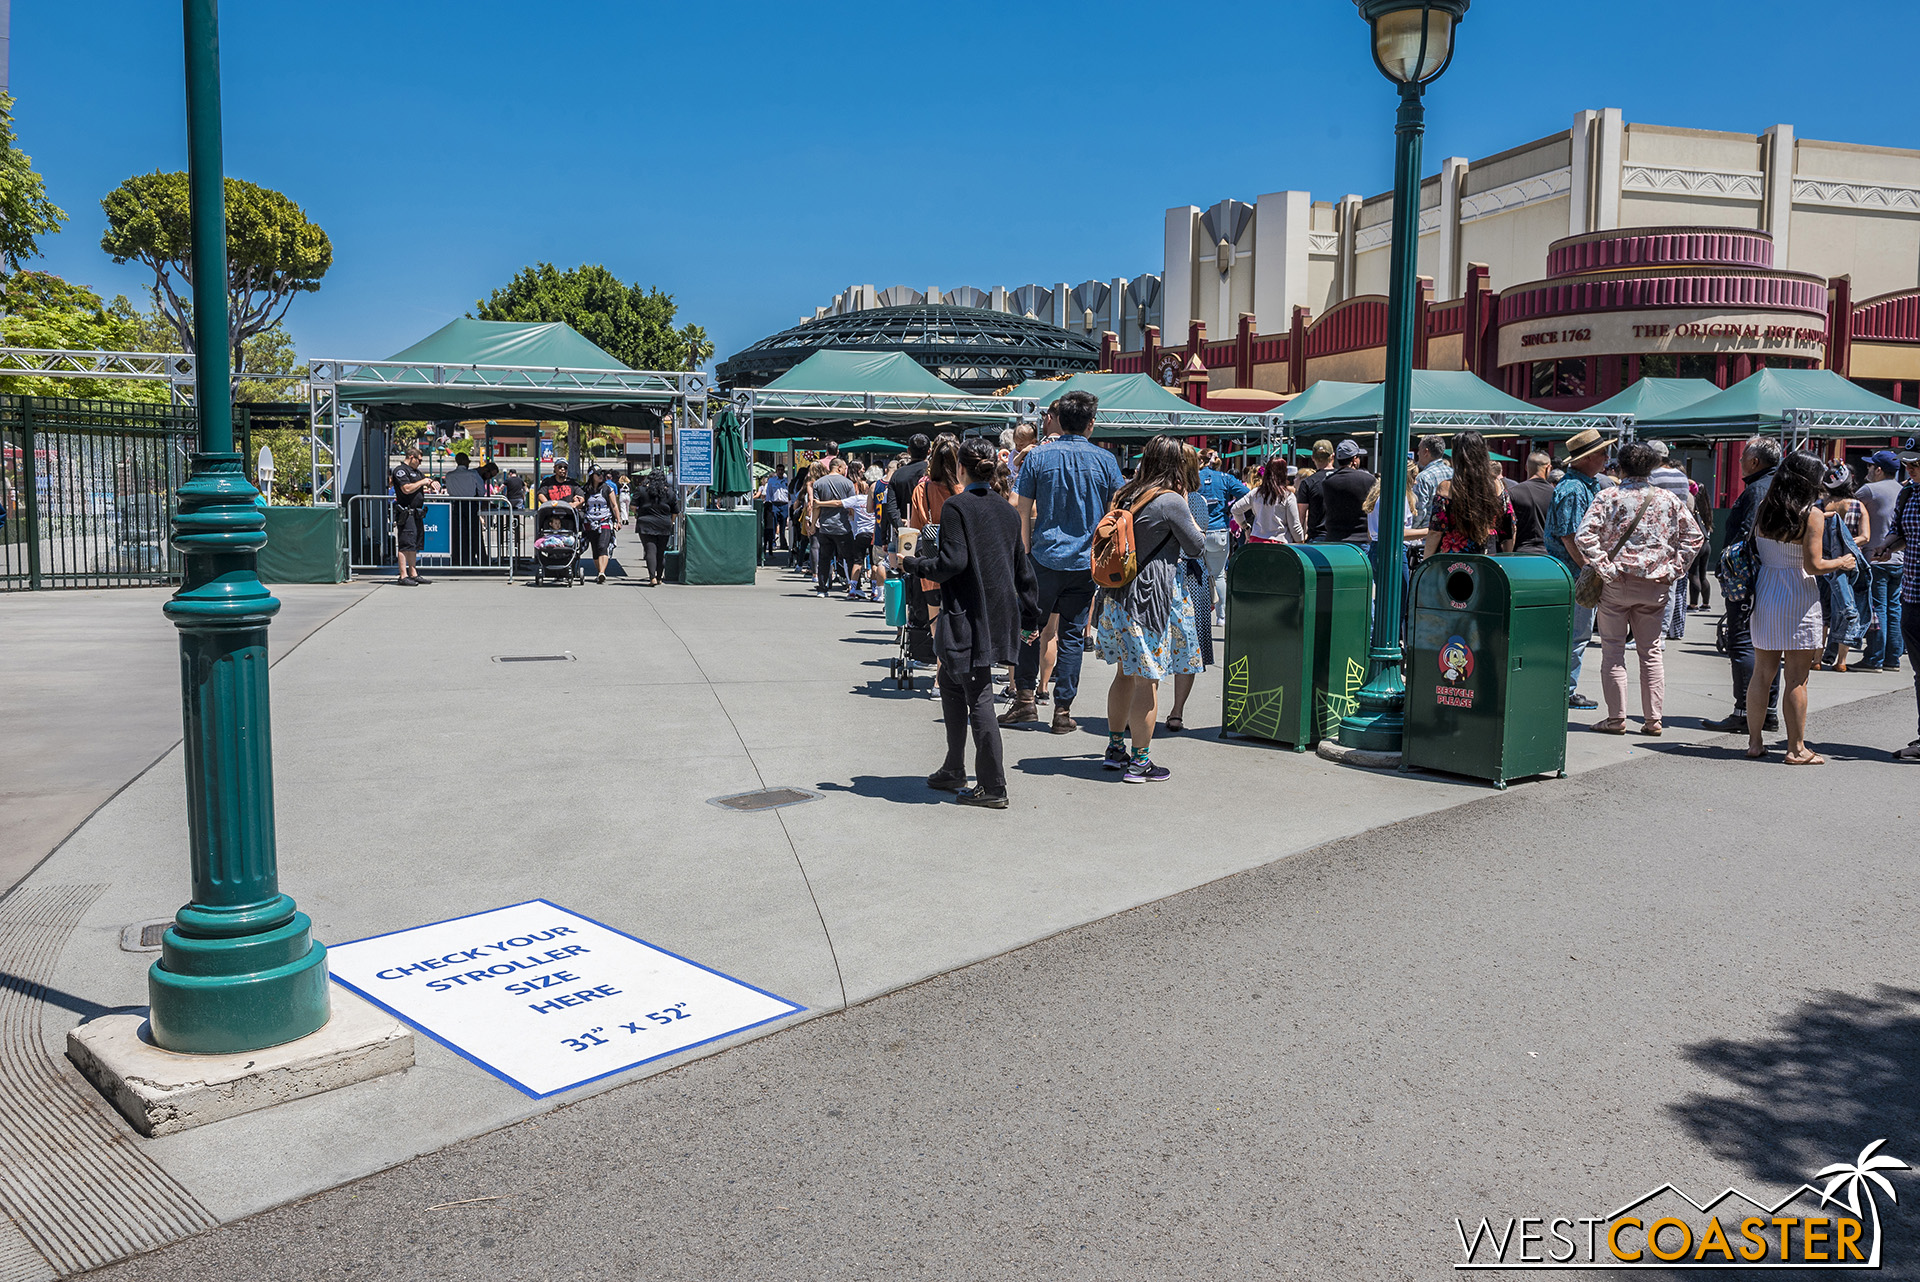 The stroller check spaces are present at the Downtown Disney security entry points too.